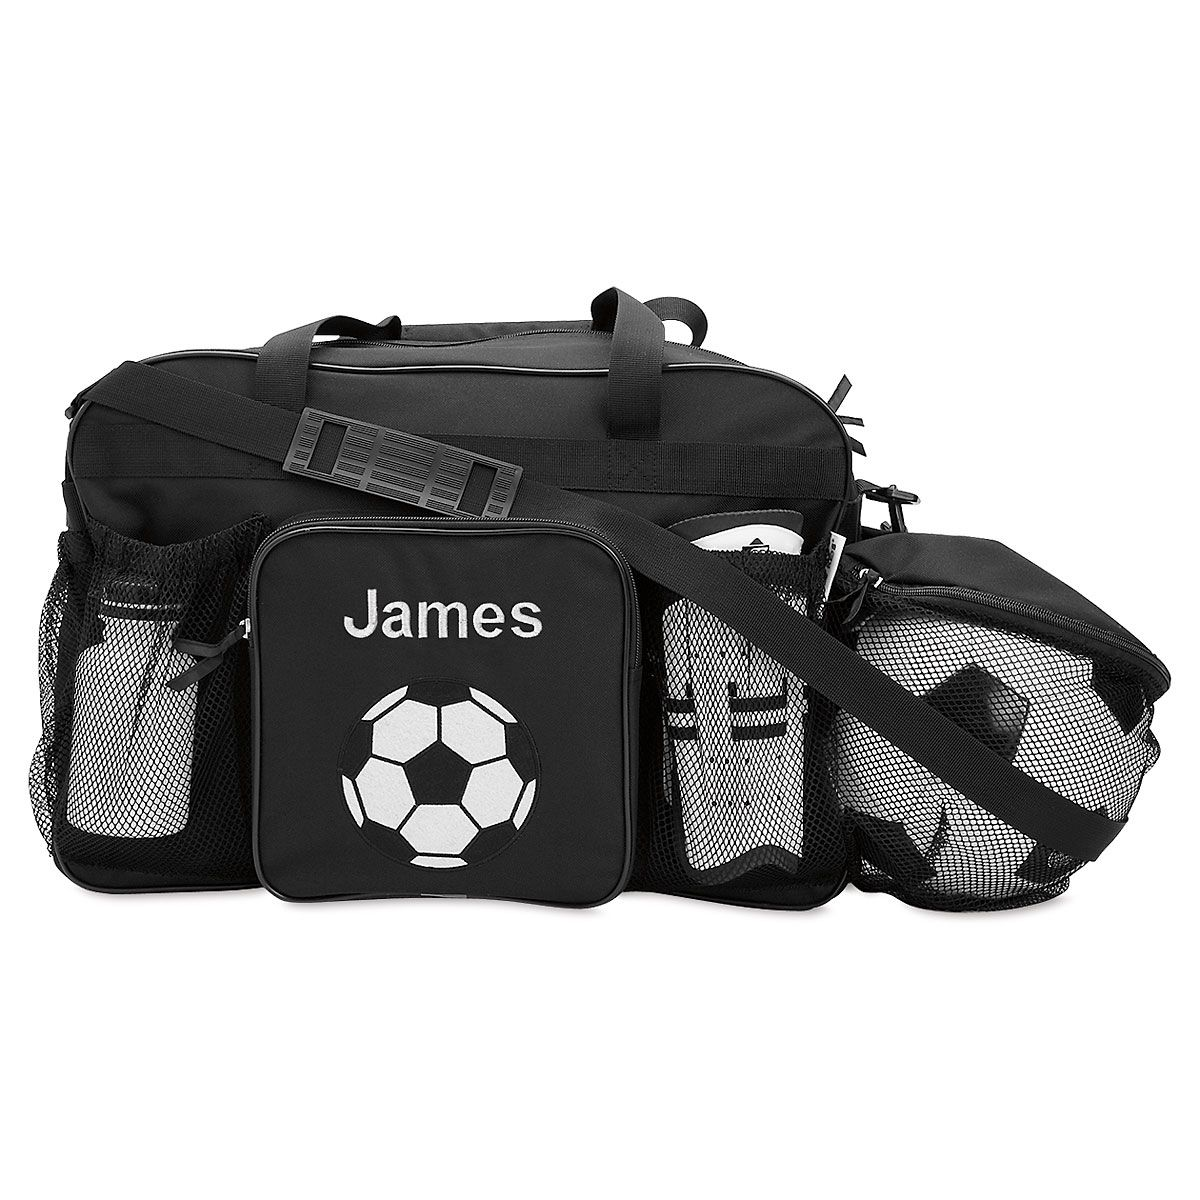 Black Personalized Soccer Sports Bag